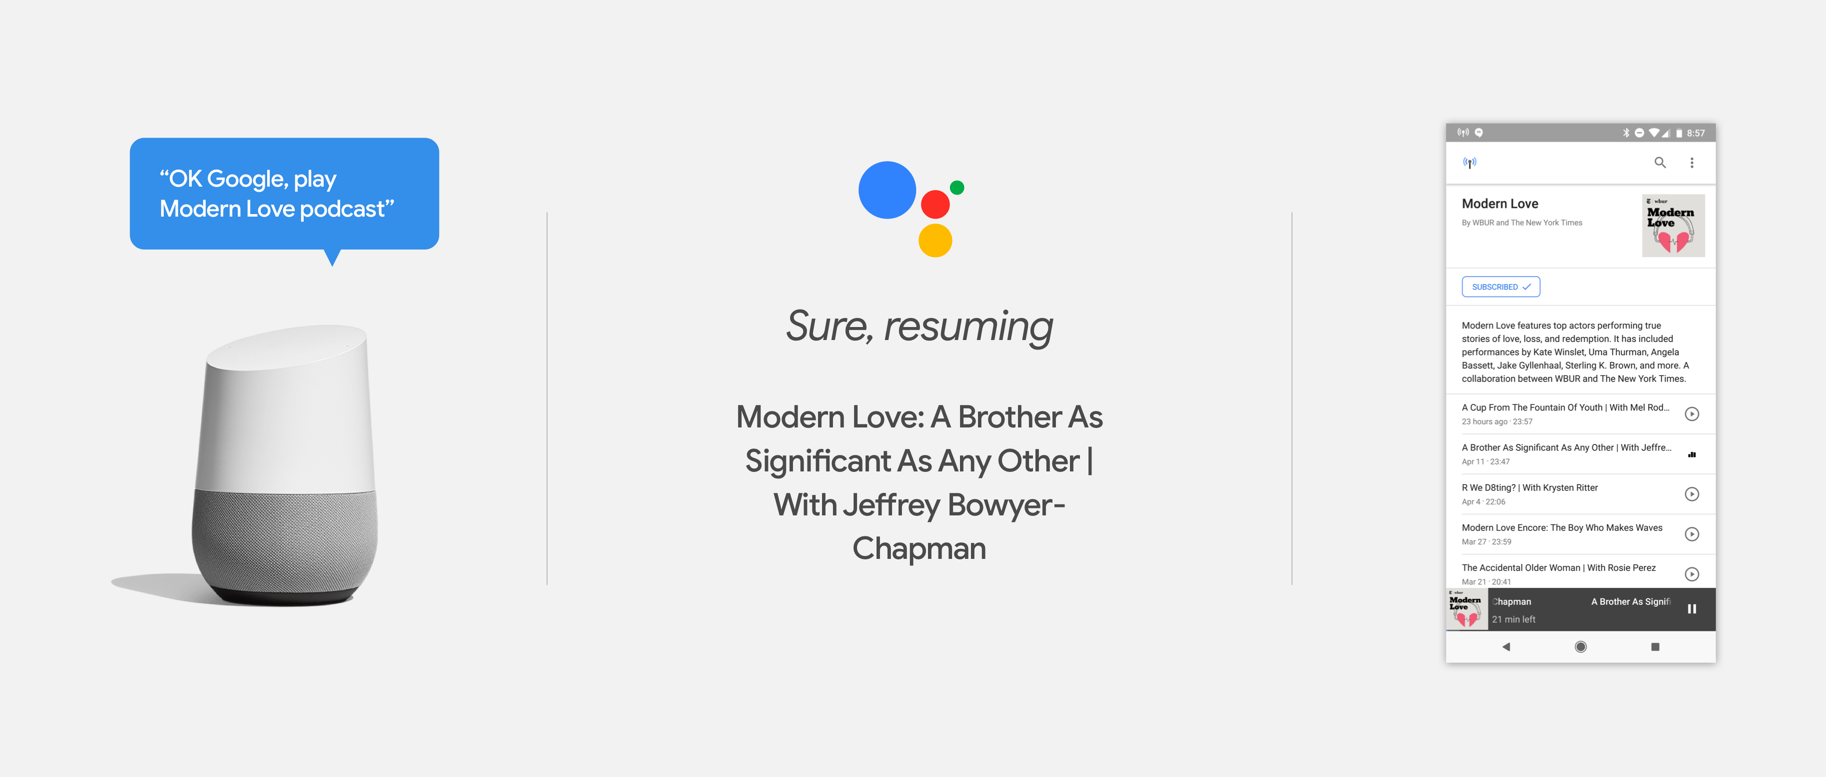 Exclusive: Inside The New Google Podcasts Strategy That